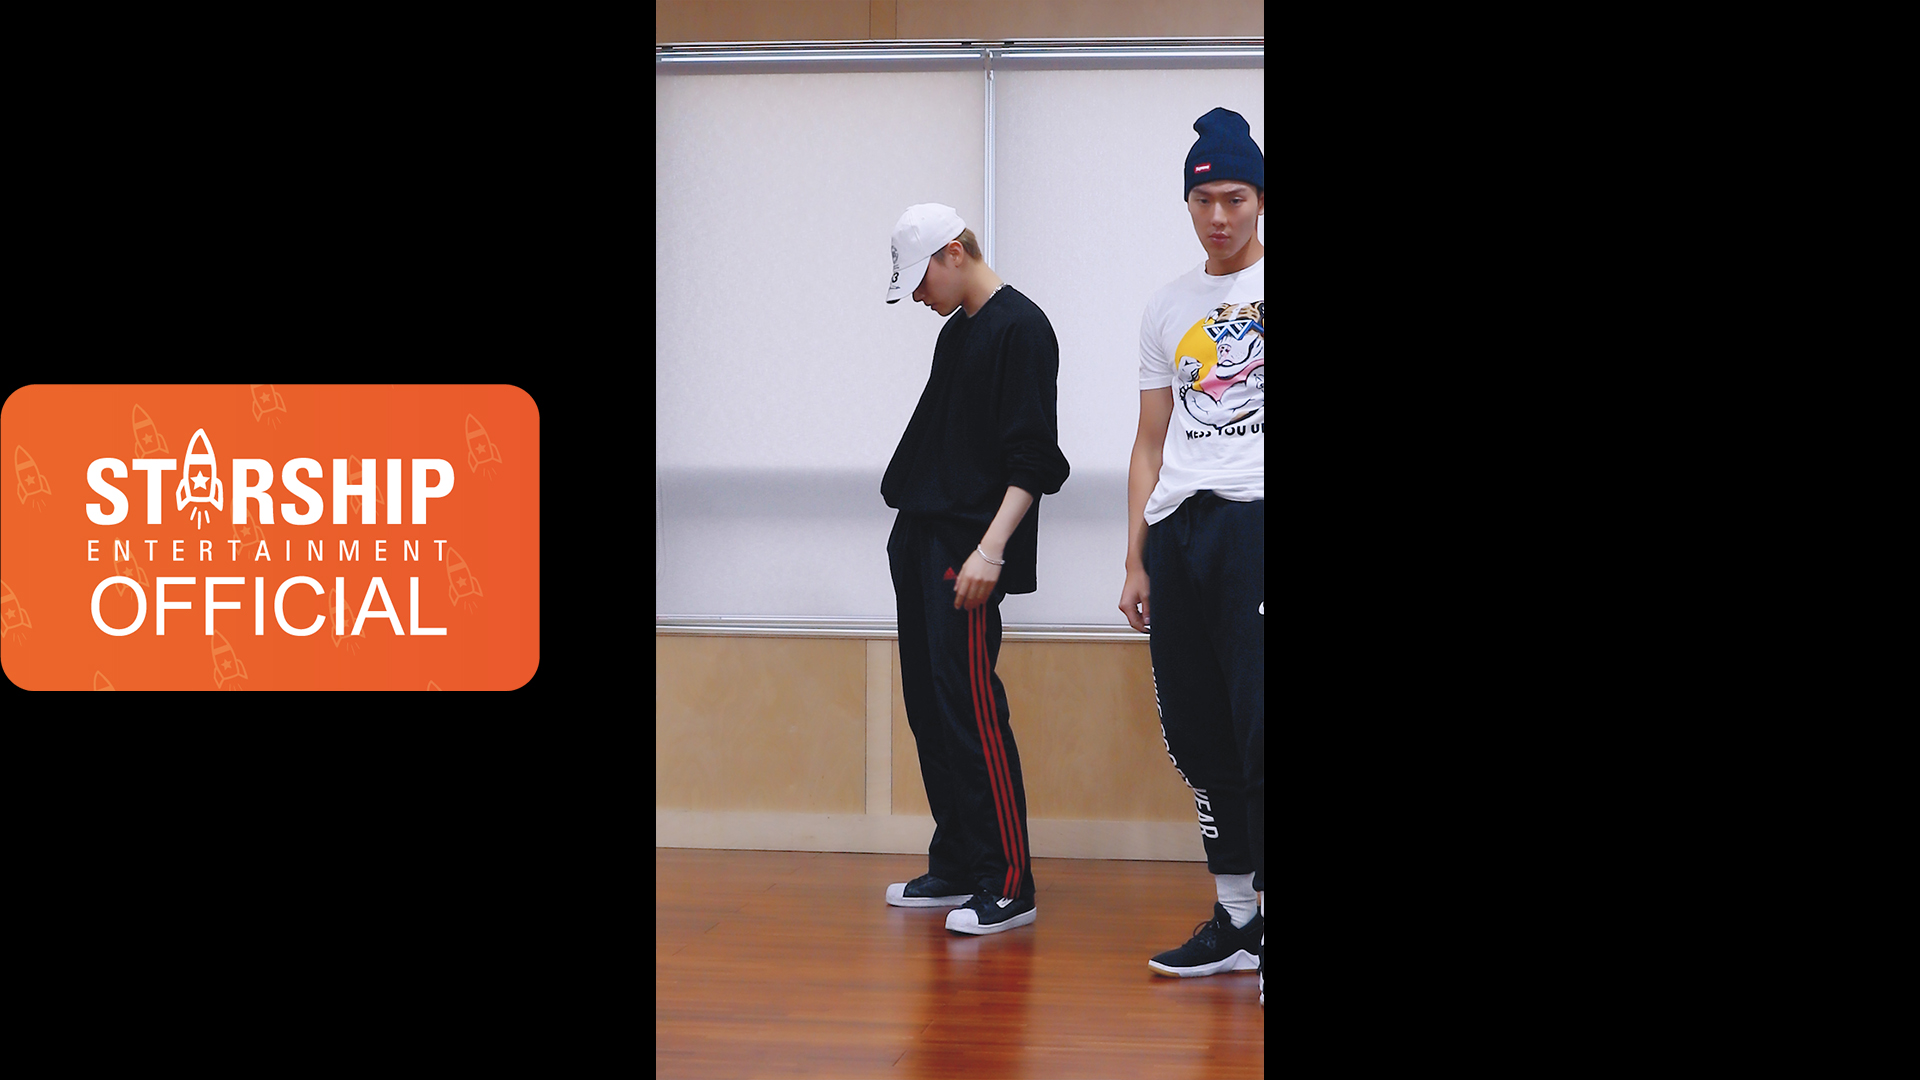 [I.M][Dance Practice] 몬스타엑스 (MONSTA X) - 'SHOOT OUT' Vertical Video